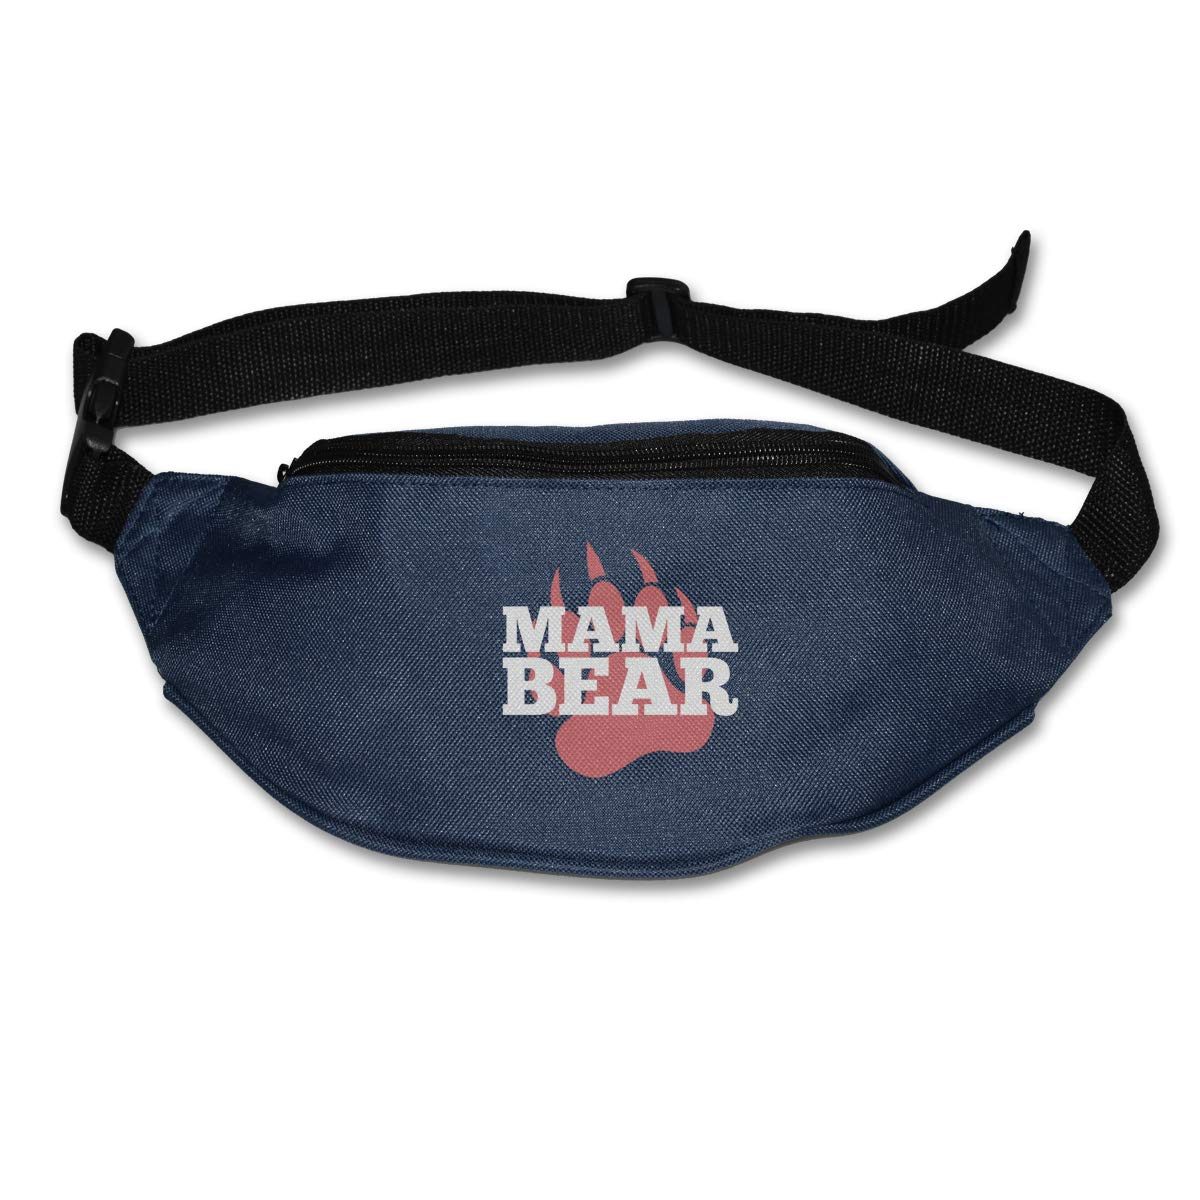 Mama Bear 5 Sport Waist Packs Fanny Pack Adjustable For Run